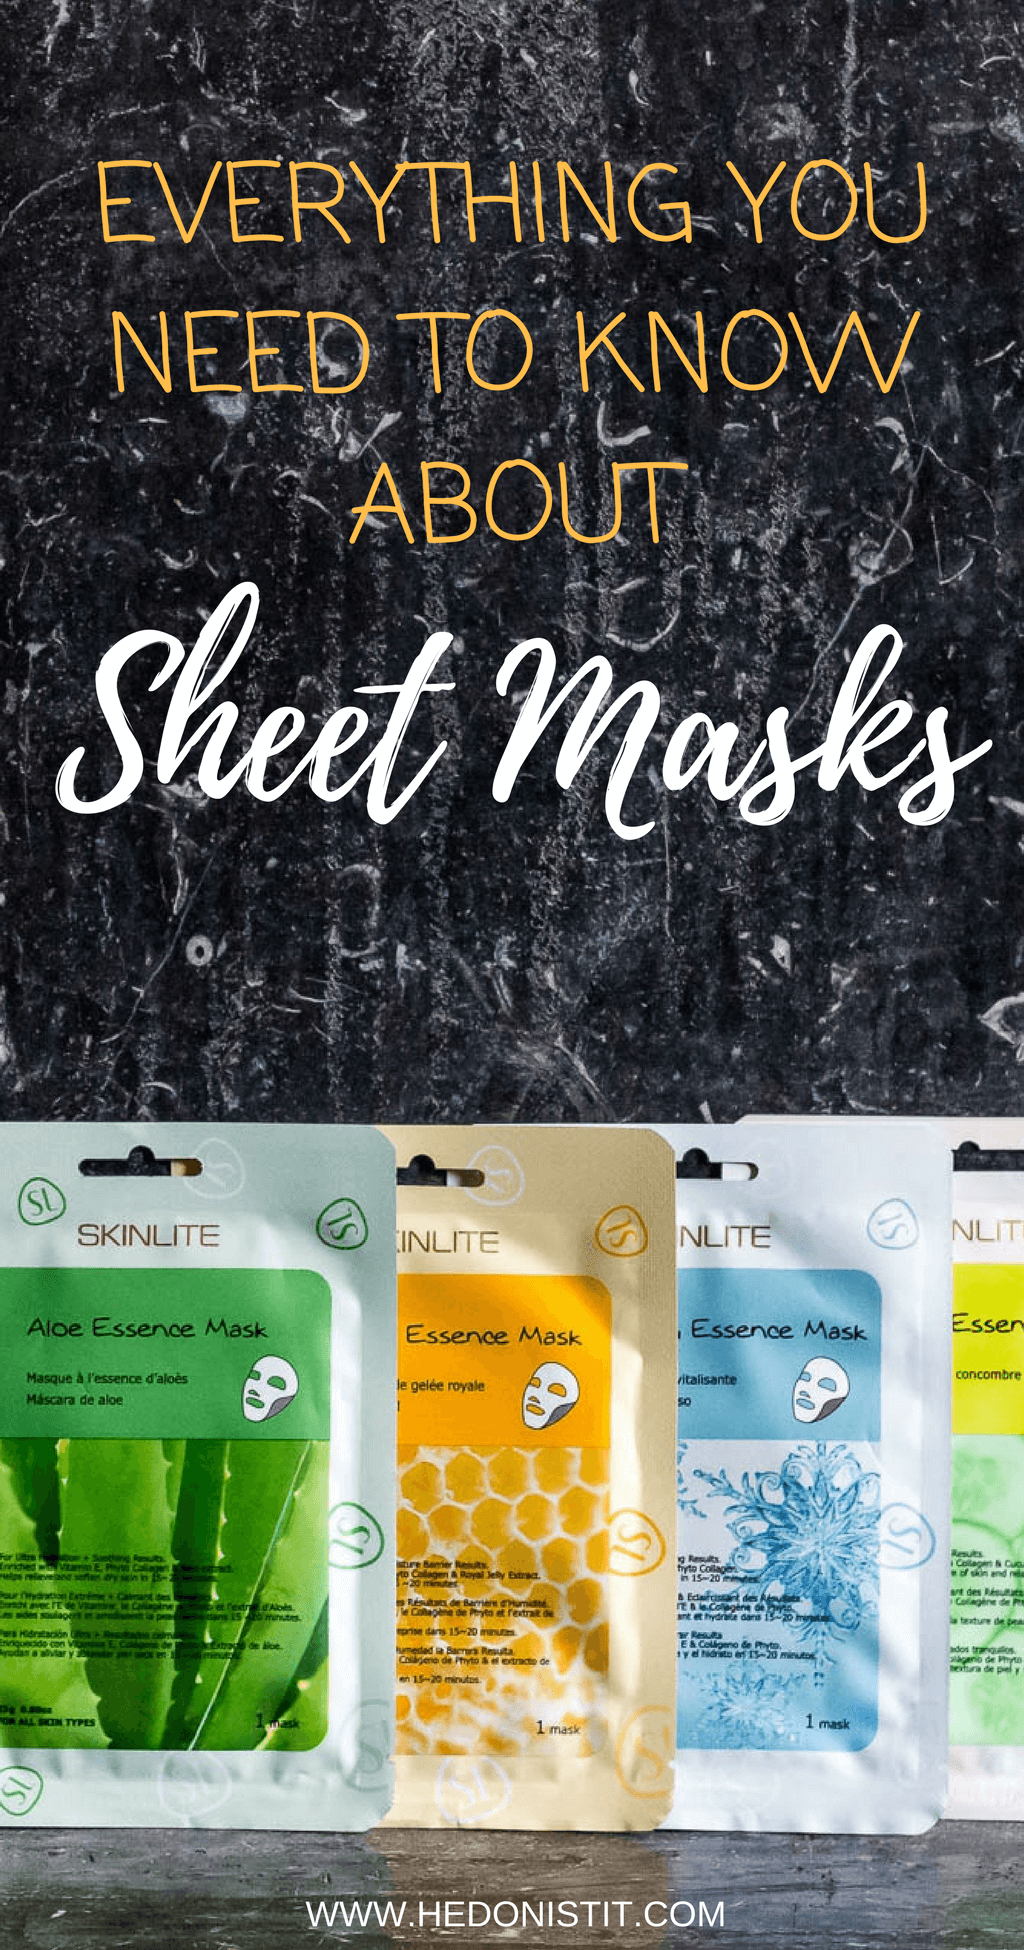 Everything you need to know about sheet masks : Sheet masks became the hottest trend in recent years in the beauty field. Where did they come from, how did they manage to attract a huge crowd of devoted users, who are they suitable for and who really shouldn't use them?